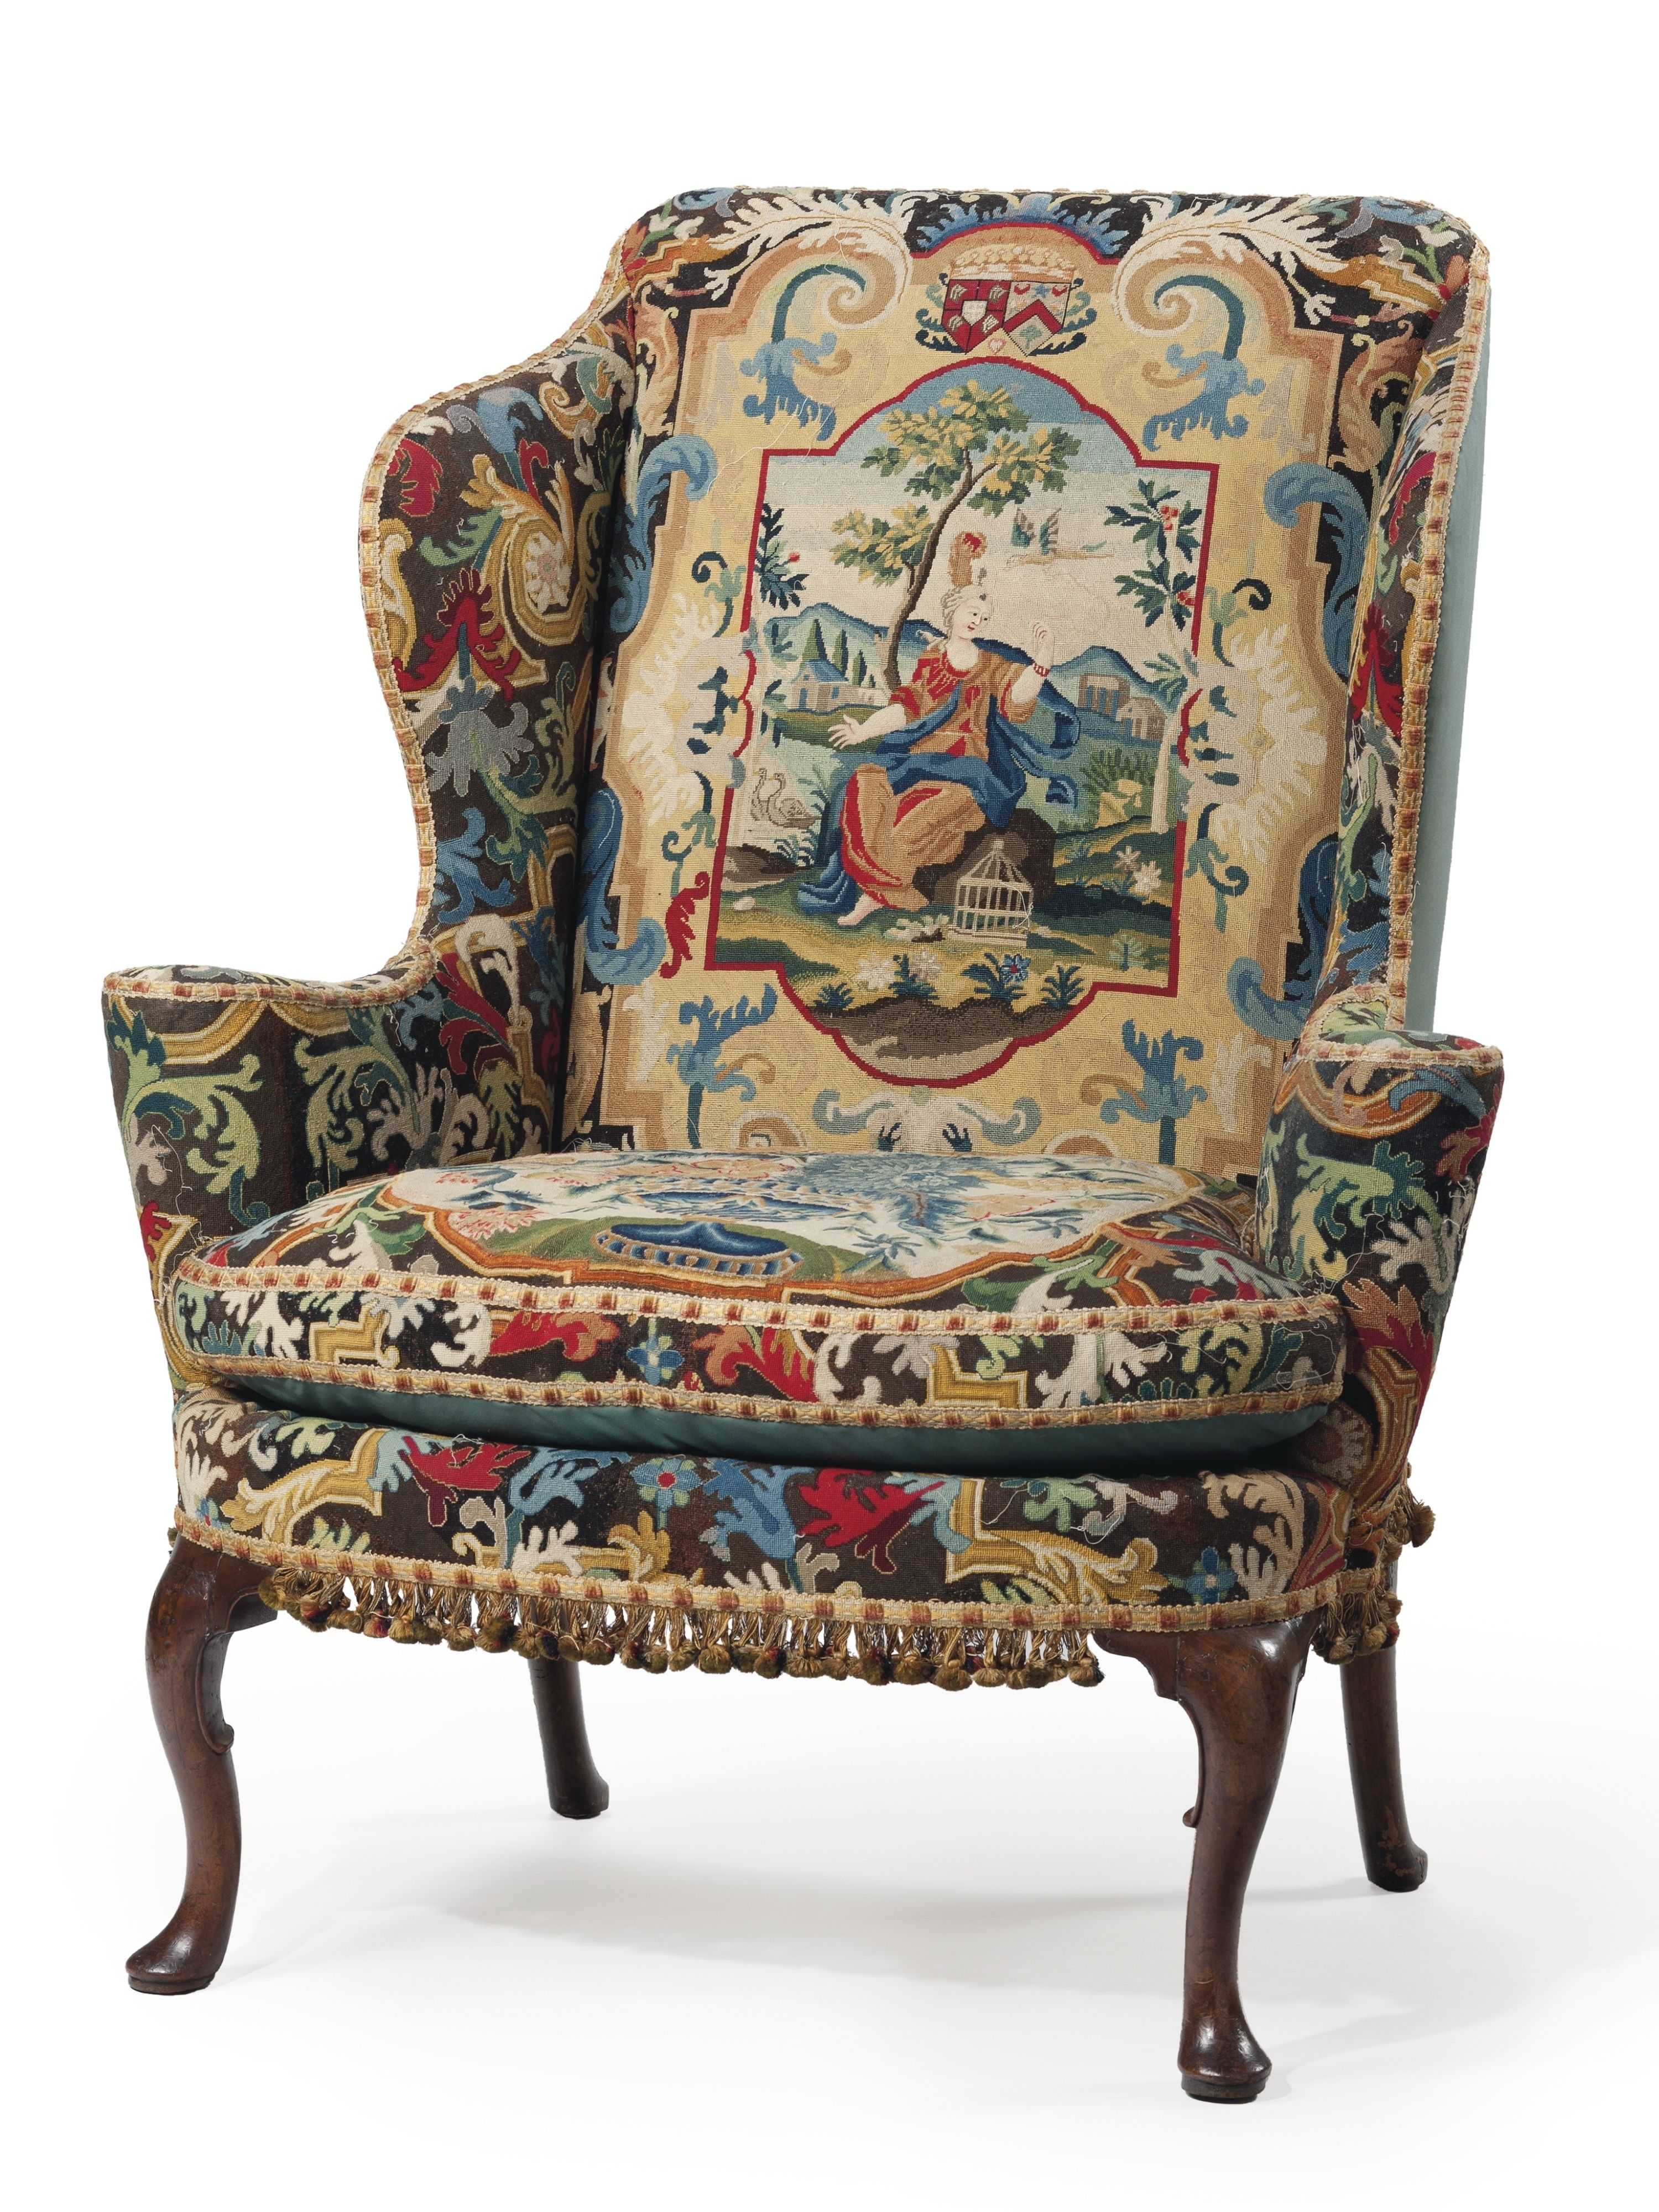 Hugette Clark One Of Her Pieces An 18th Century Chairs In Perfect Condition